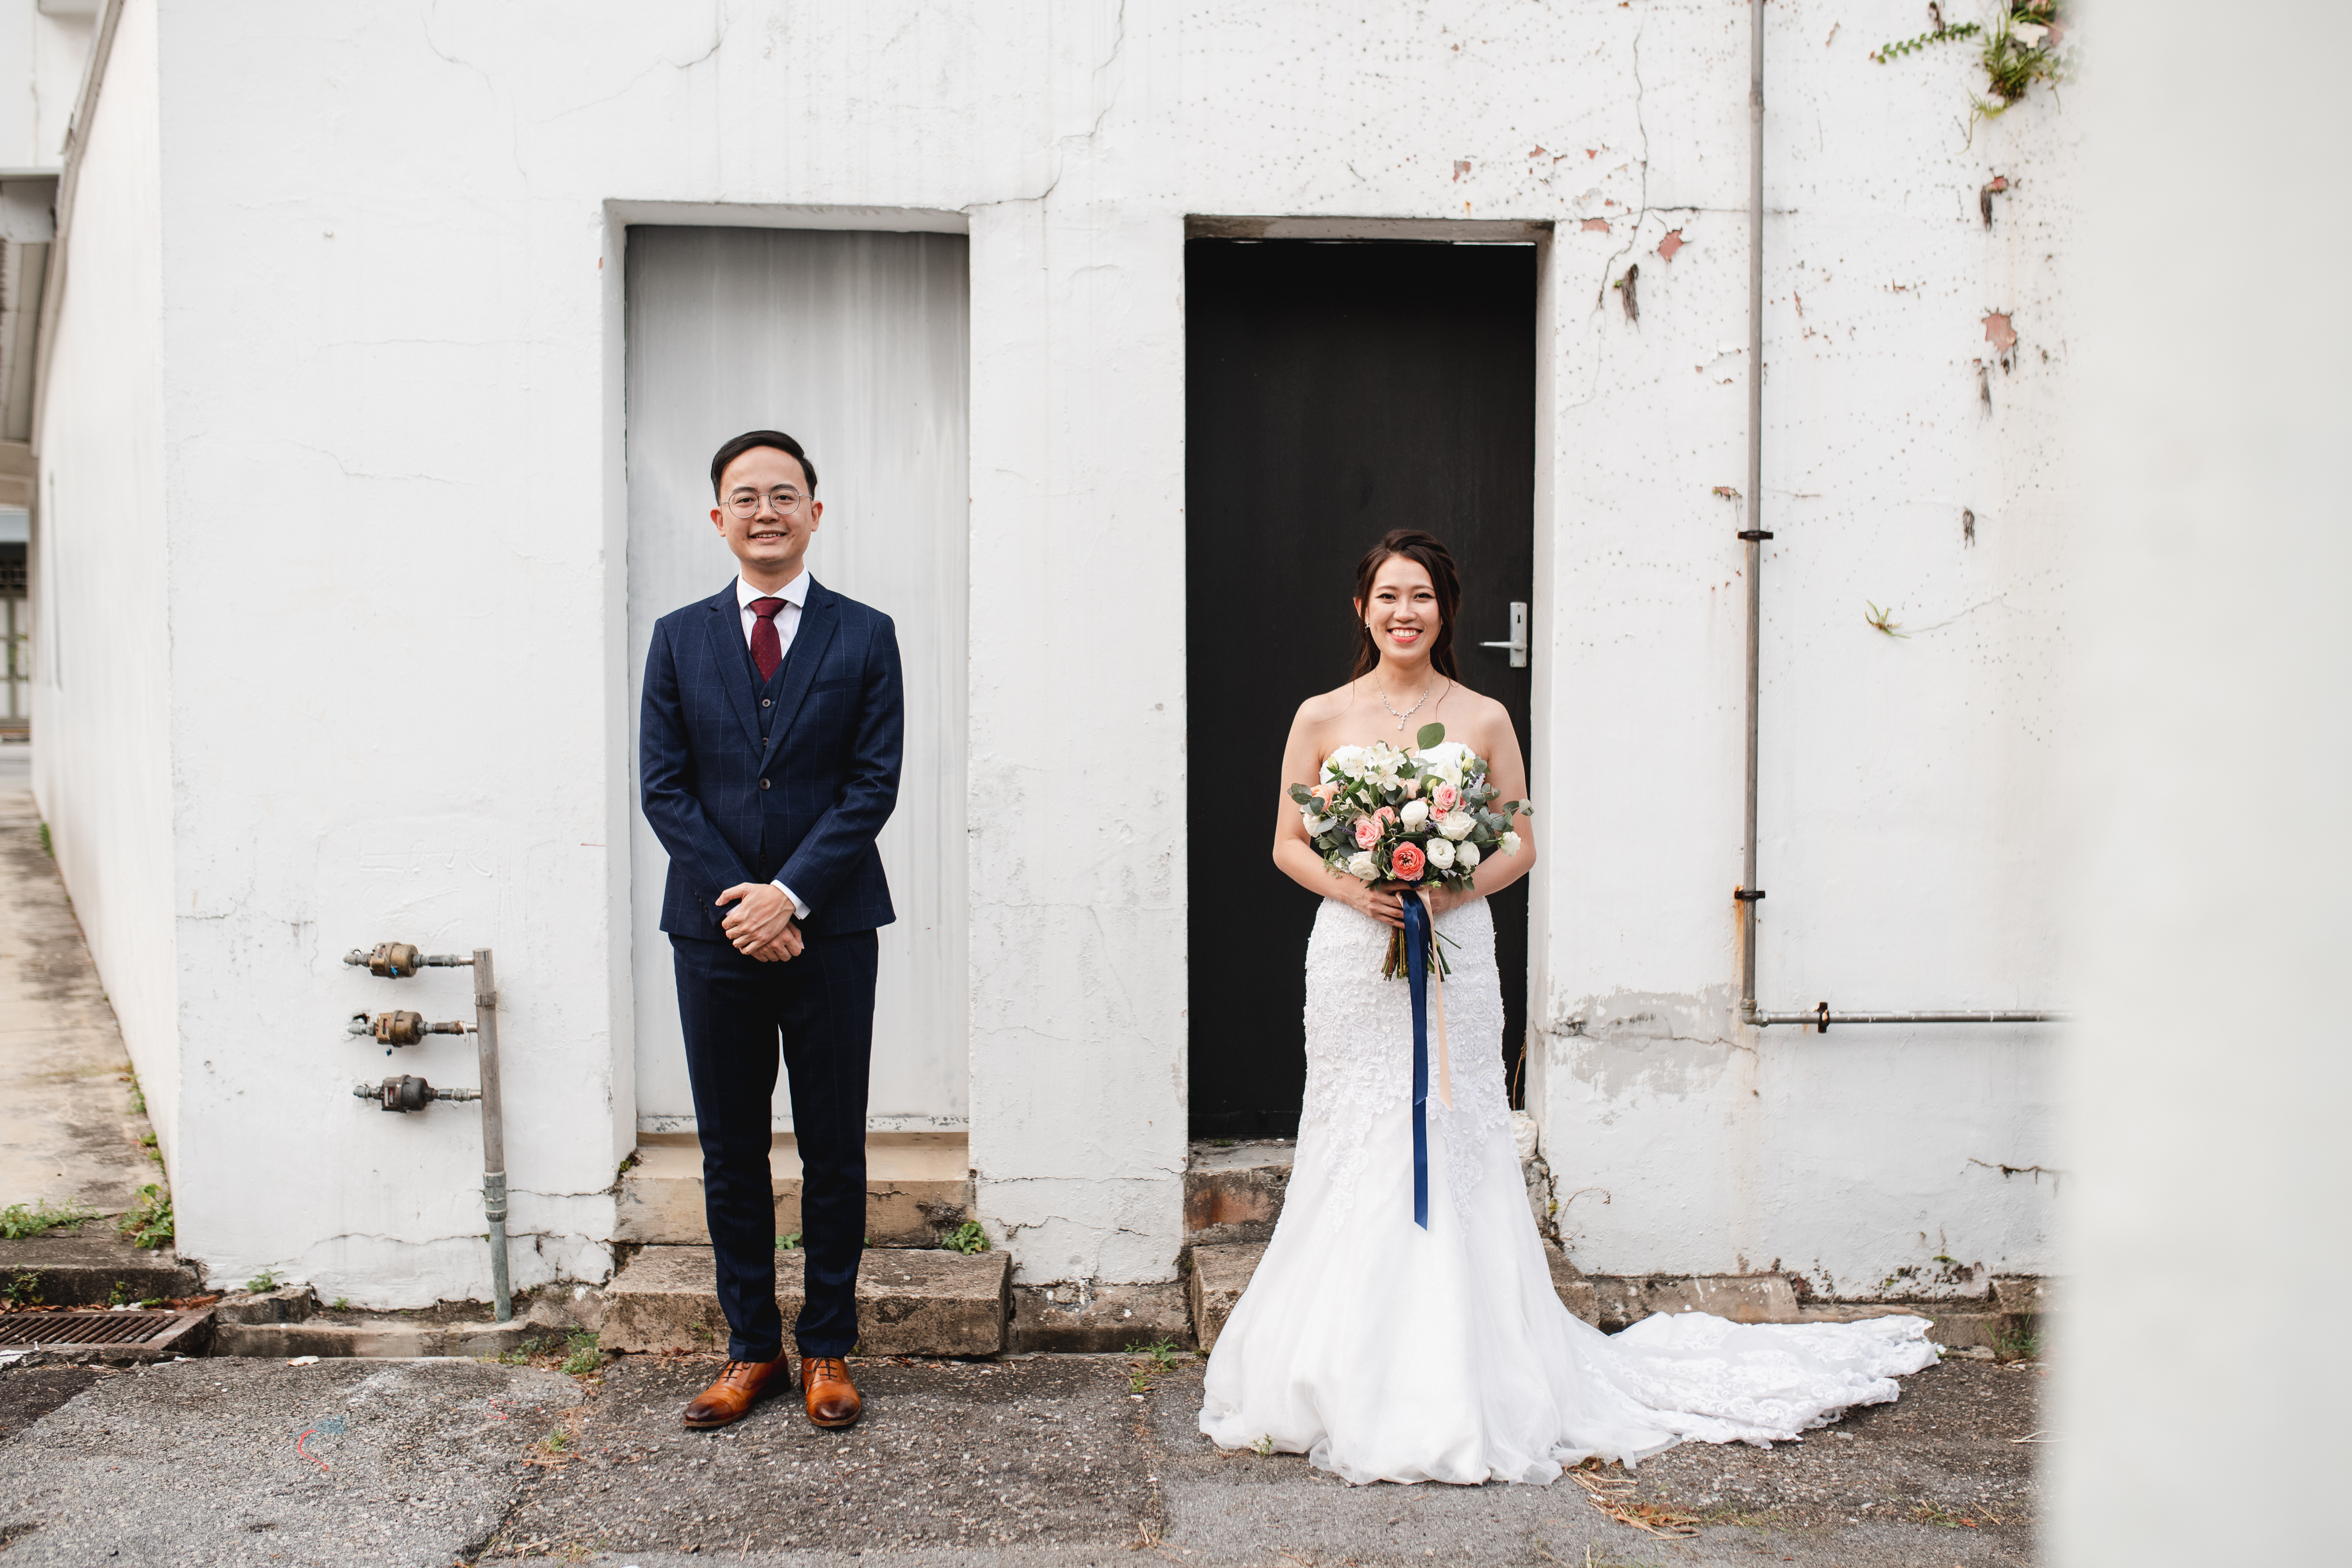 Andy & Evonne - PW-120